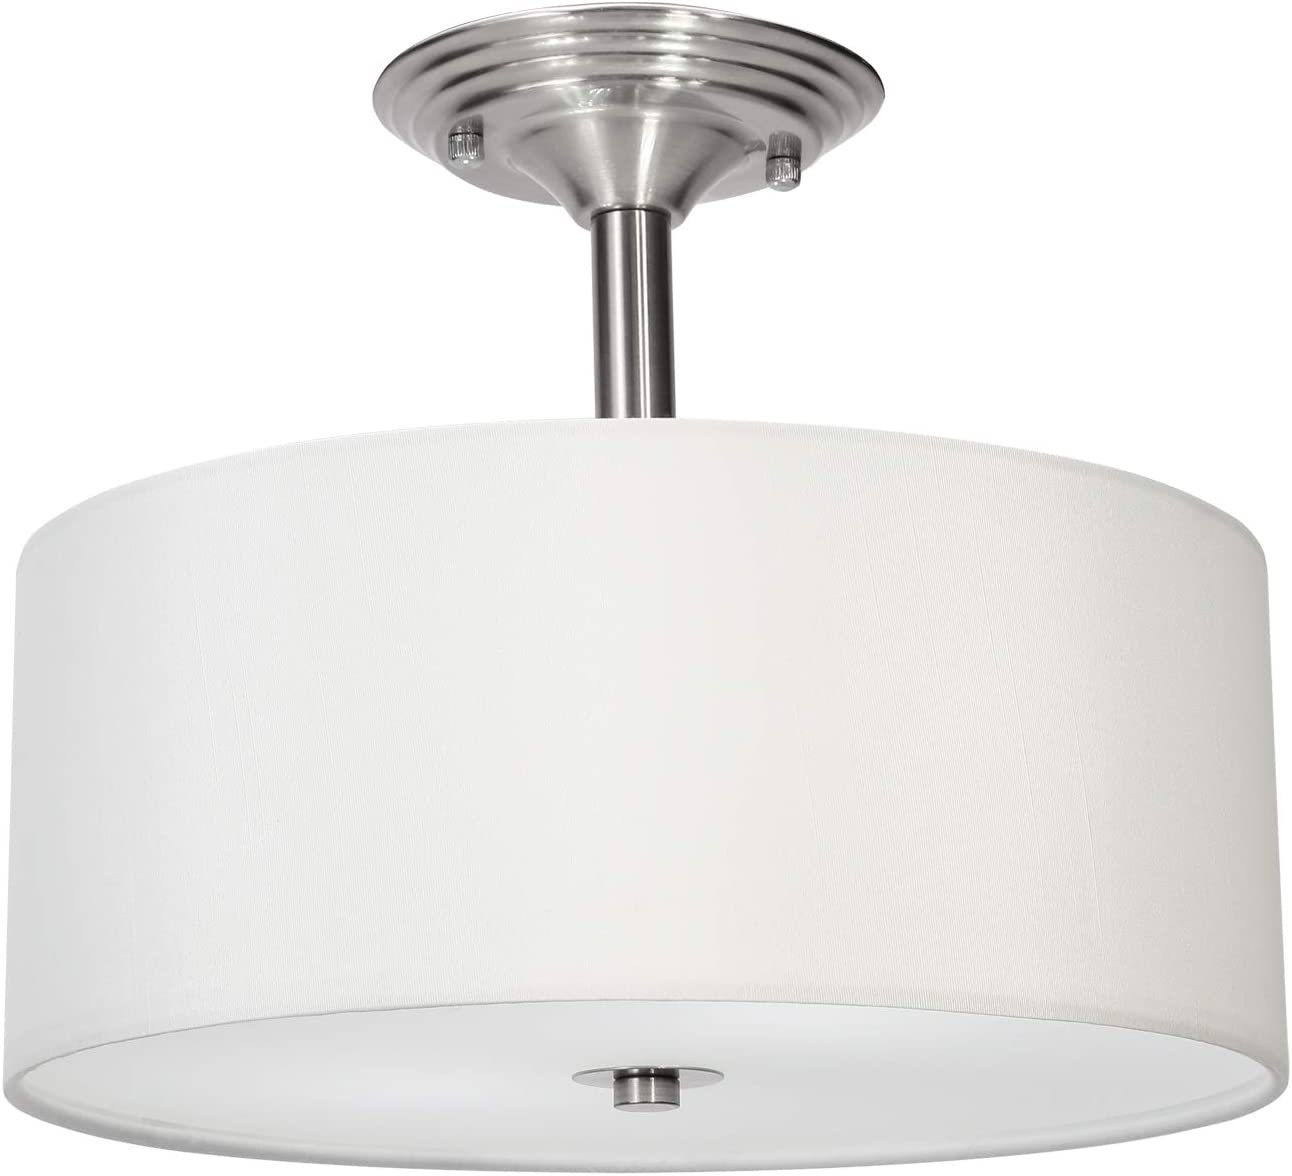 CO-Z Brushed Nickel Finish Semi Flush Mount Ceiling Light, Two Bulb White Hardback Fabric Drum Shade Chandelier Light Fixture with Acrylic Diffuser, UL-Certified 120W LED Dimmable Lighting